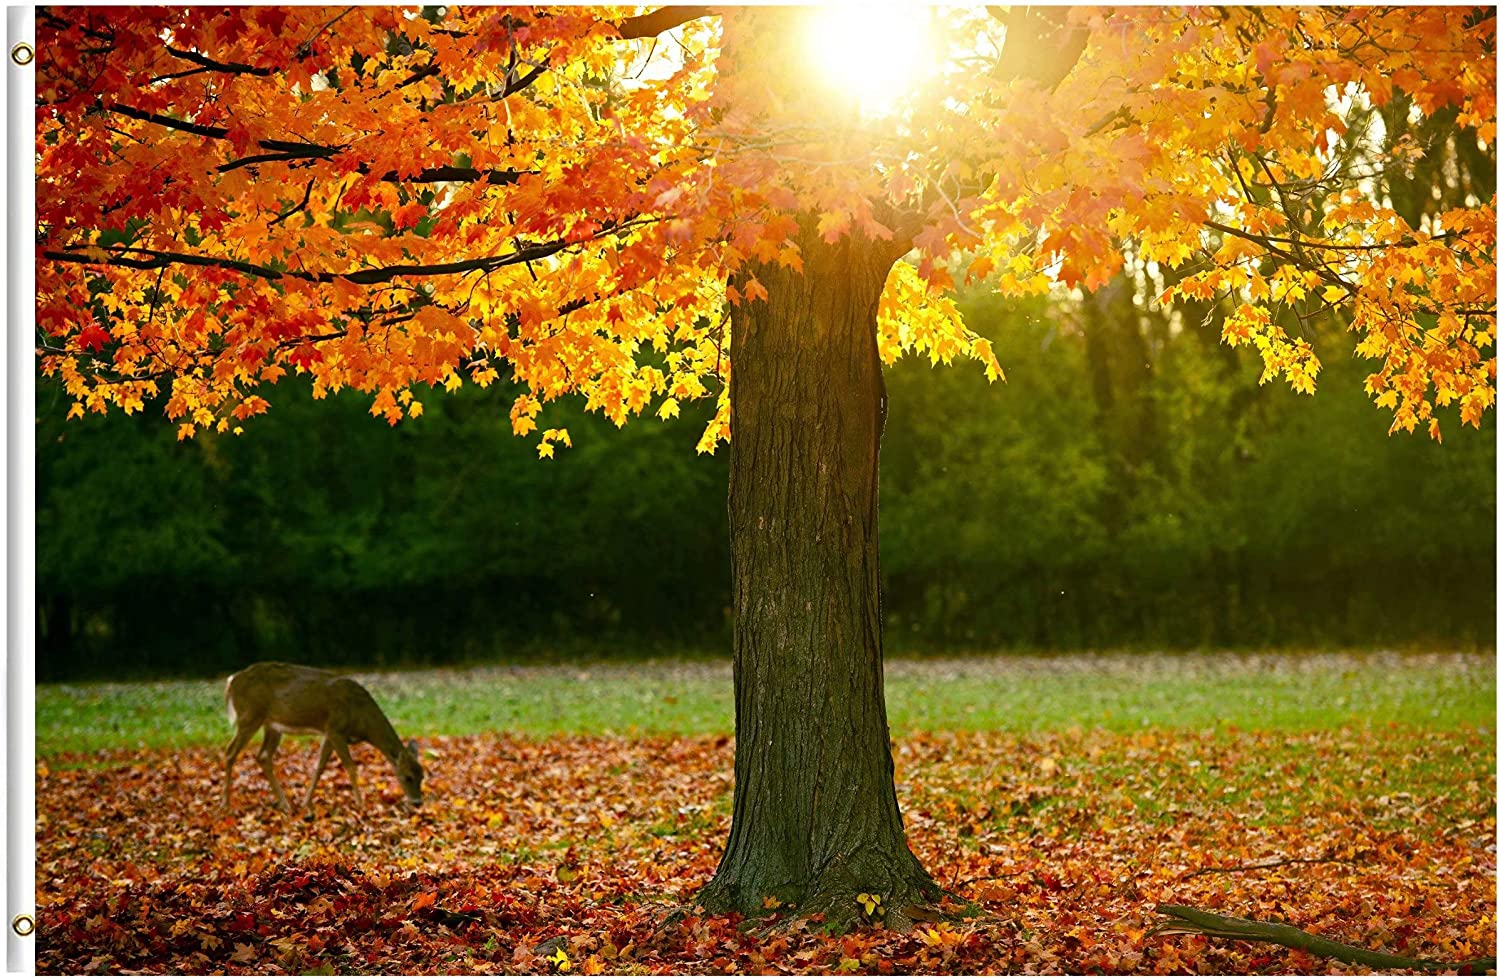 Amazon Com Shinesnow Autumn Forest Maple Tree Fall Leaves Animal Deer Golden Sunlight Seasonal 3x5 Feet Flag Polyester Double Stitched With Brass Grommets 3 X 5 Ft Flag For Outdoor Indoor Home